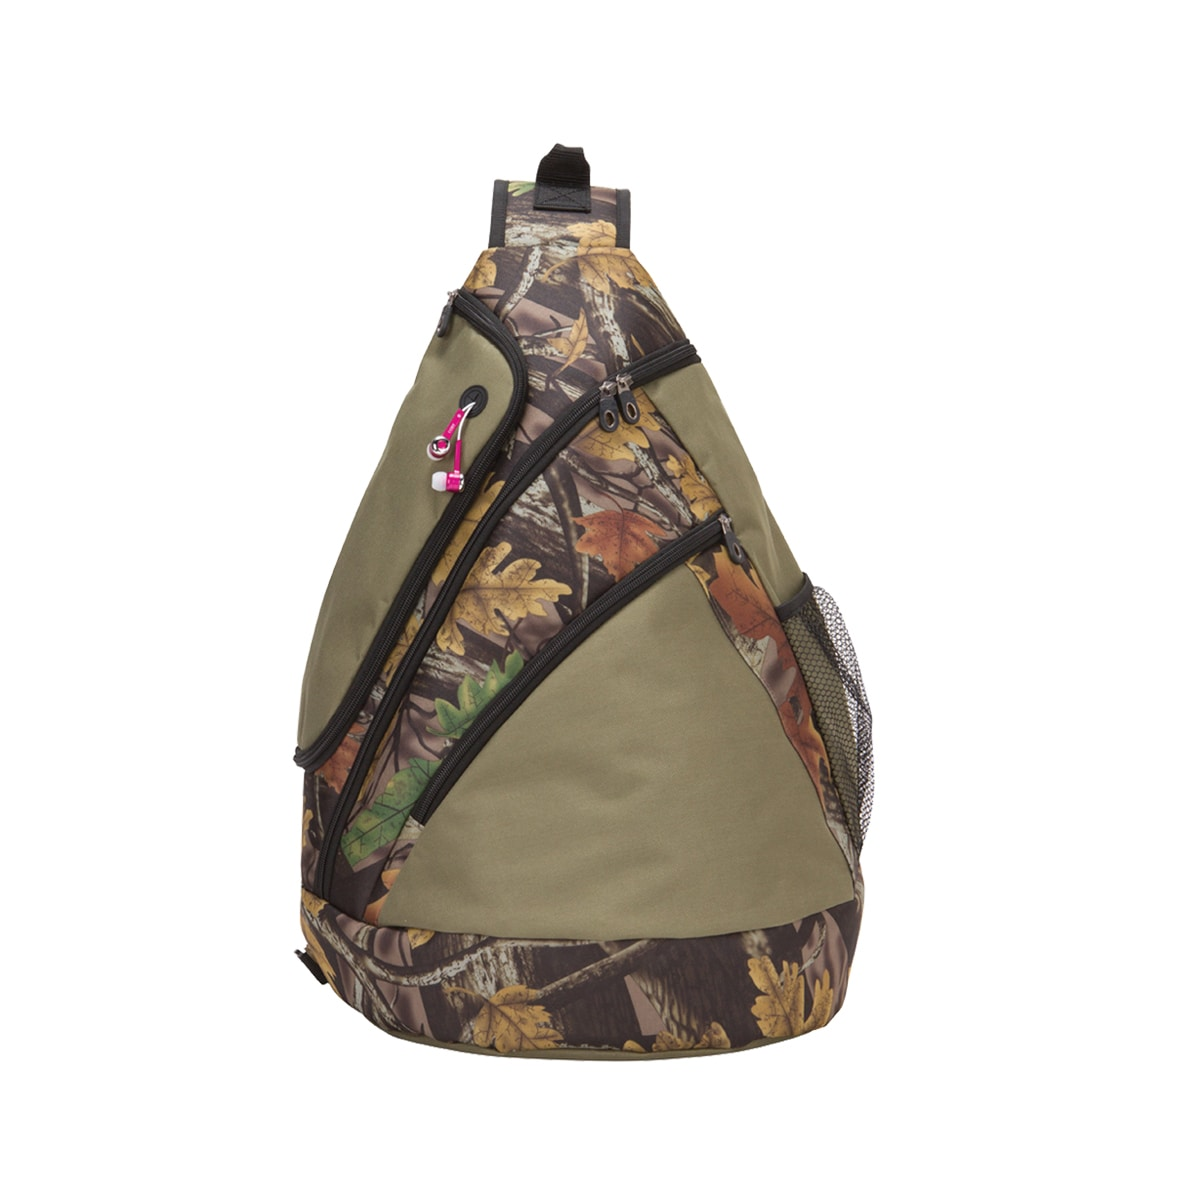 GOOD HOPE BAGS Camo Sling Tablet Backpack (Camo), Green, ...